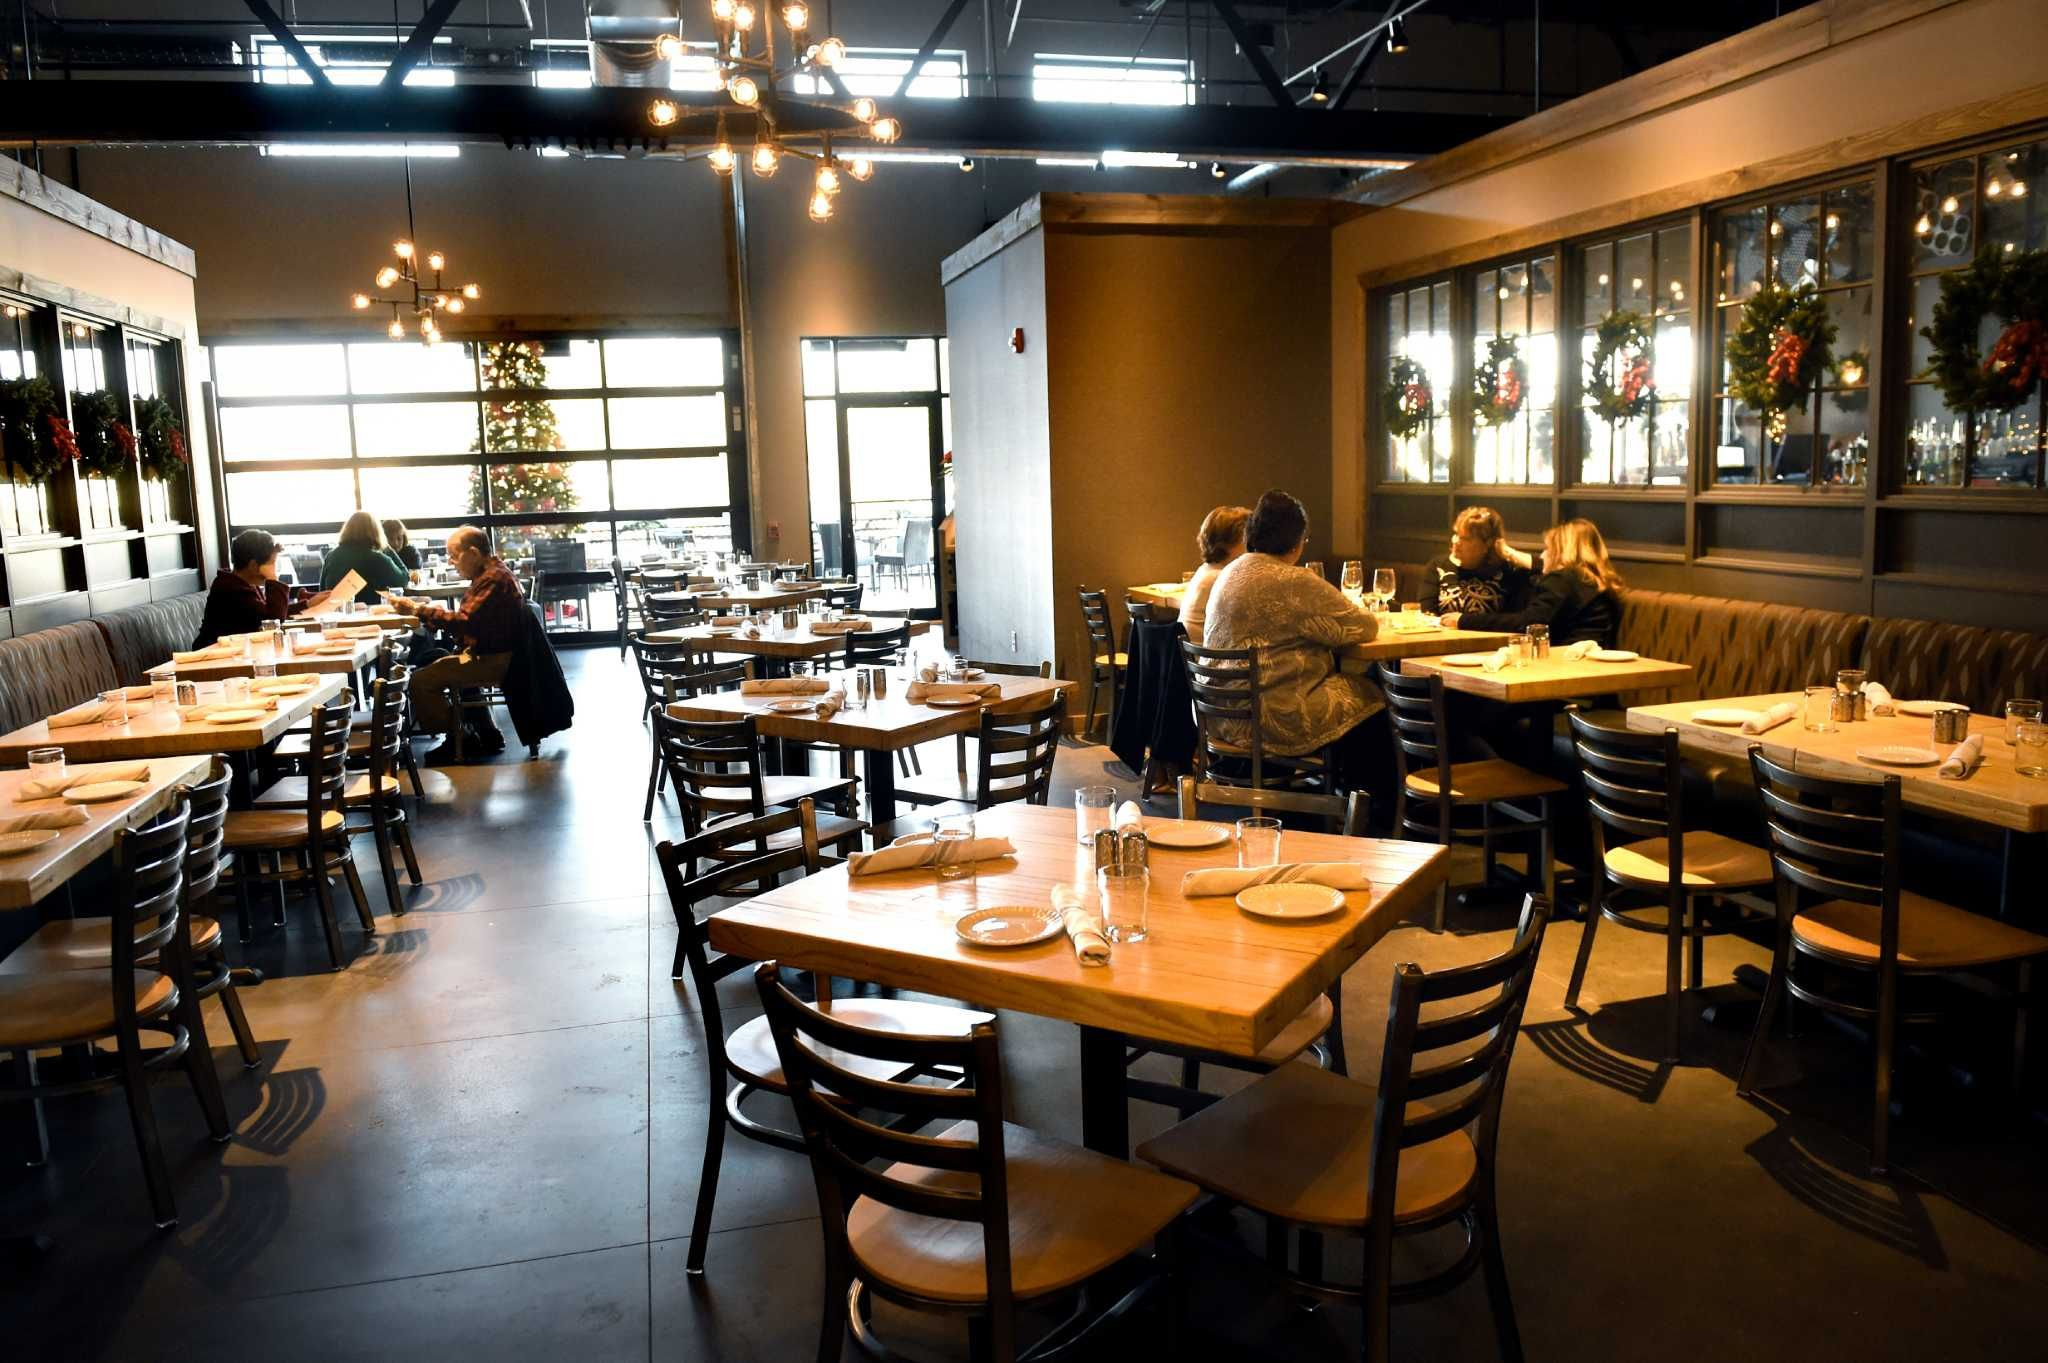 According To Opentable A Provider For Online Restaurant Reservations These Are The Top 10 Most Booked Restaurants In Upstate New York